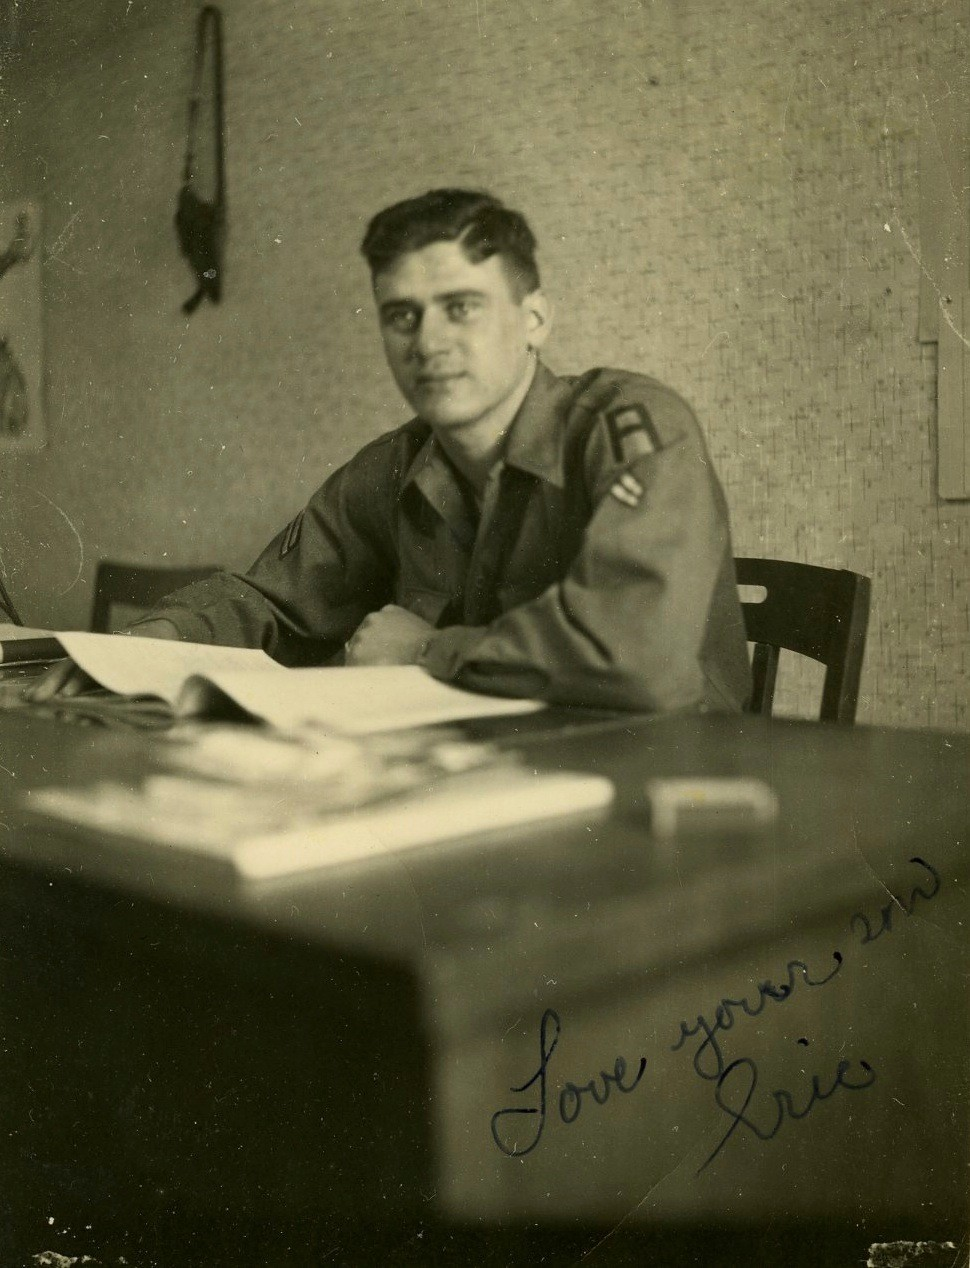 Eric Oppenheimer served with the 35th Signal Battalion under General Courtney Hicks Hodges in World War II.